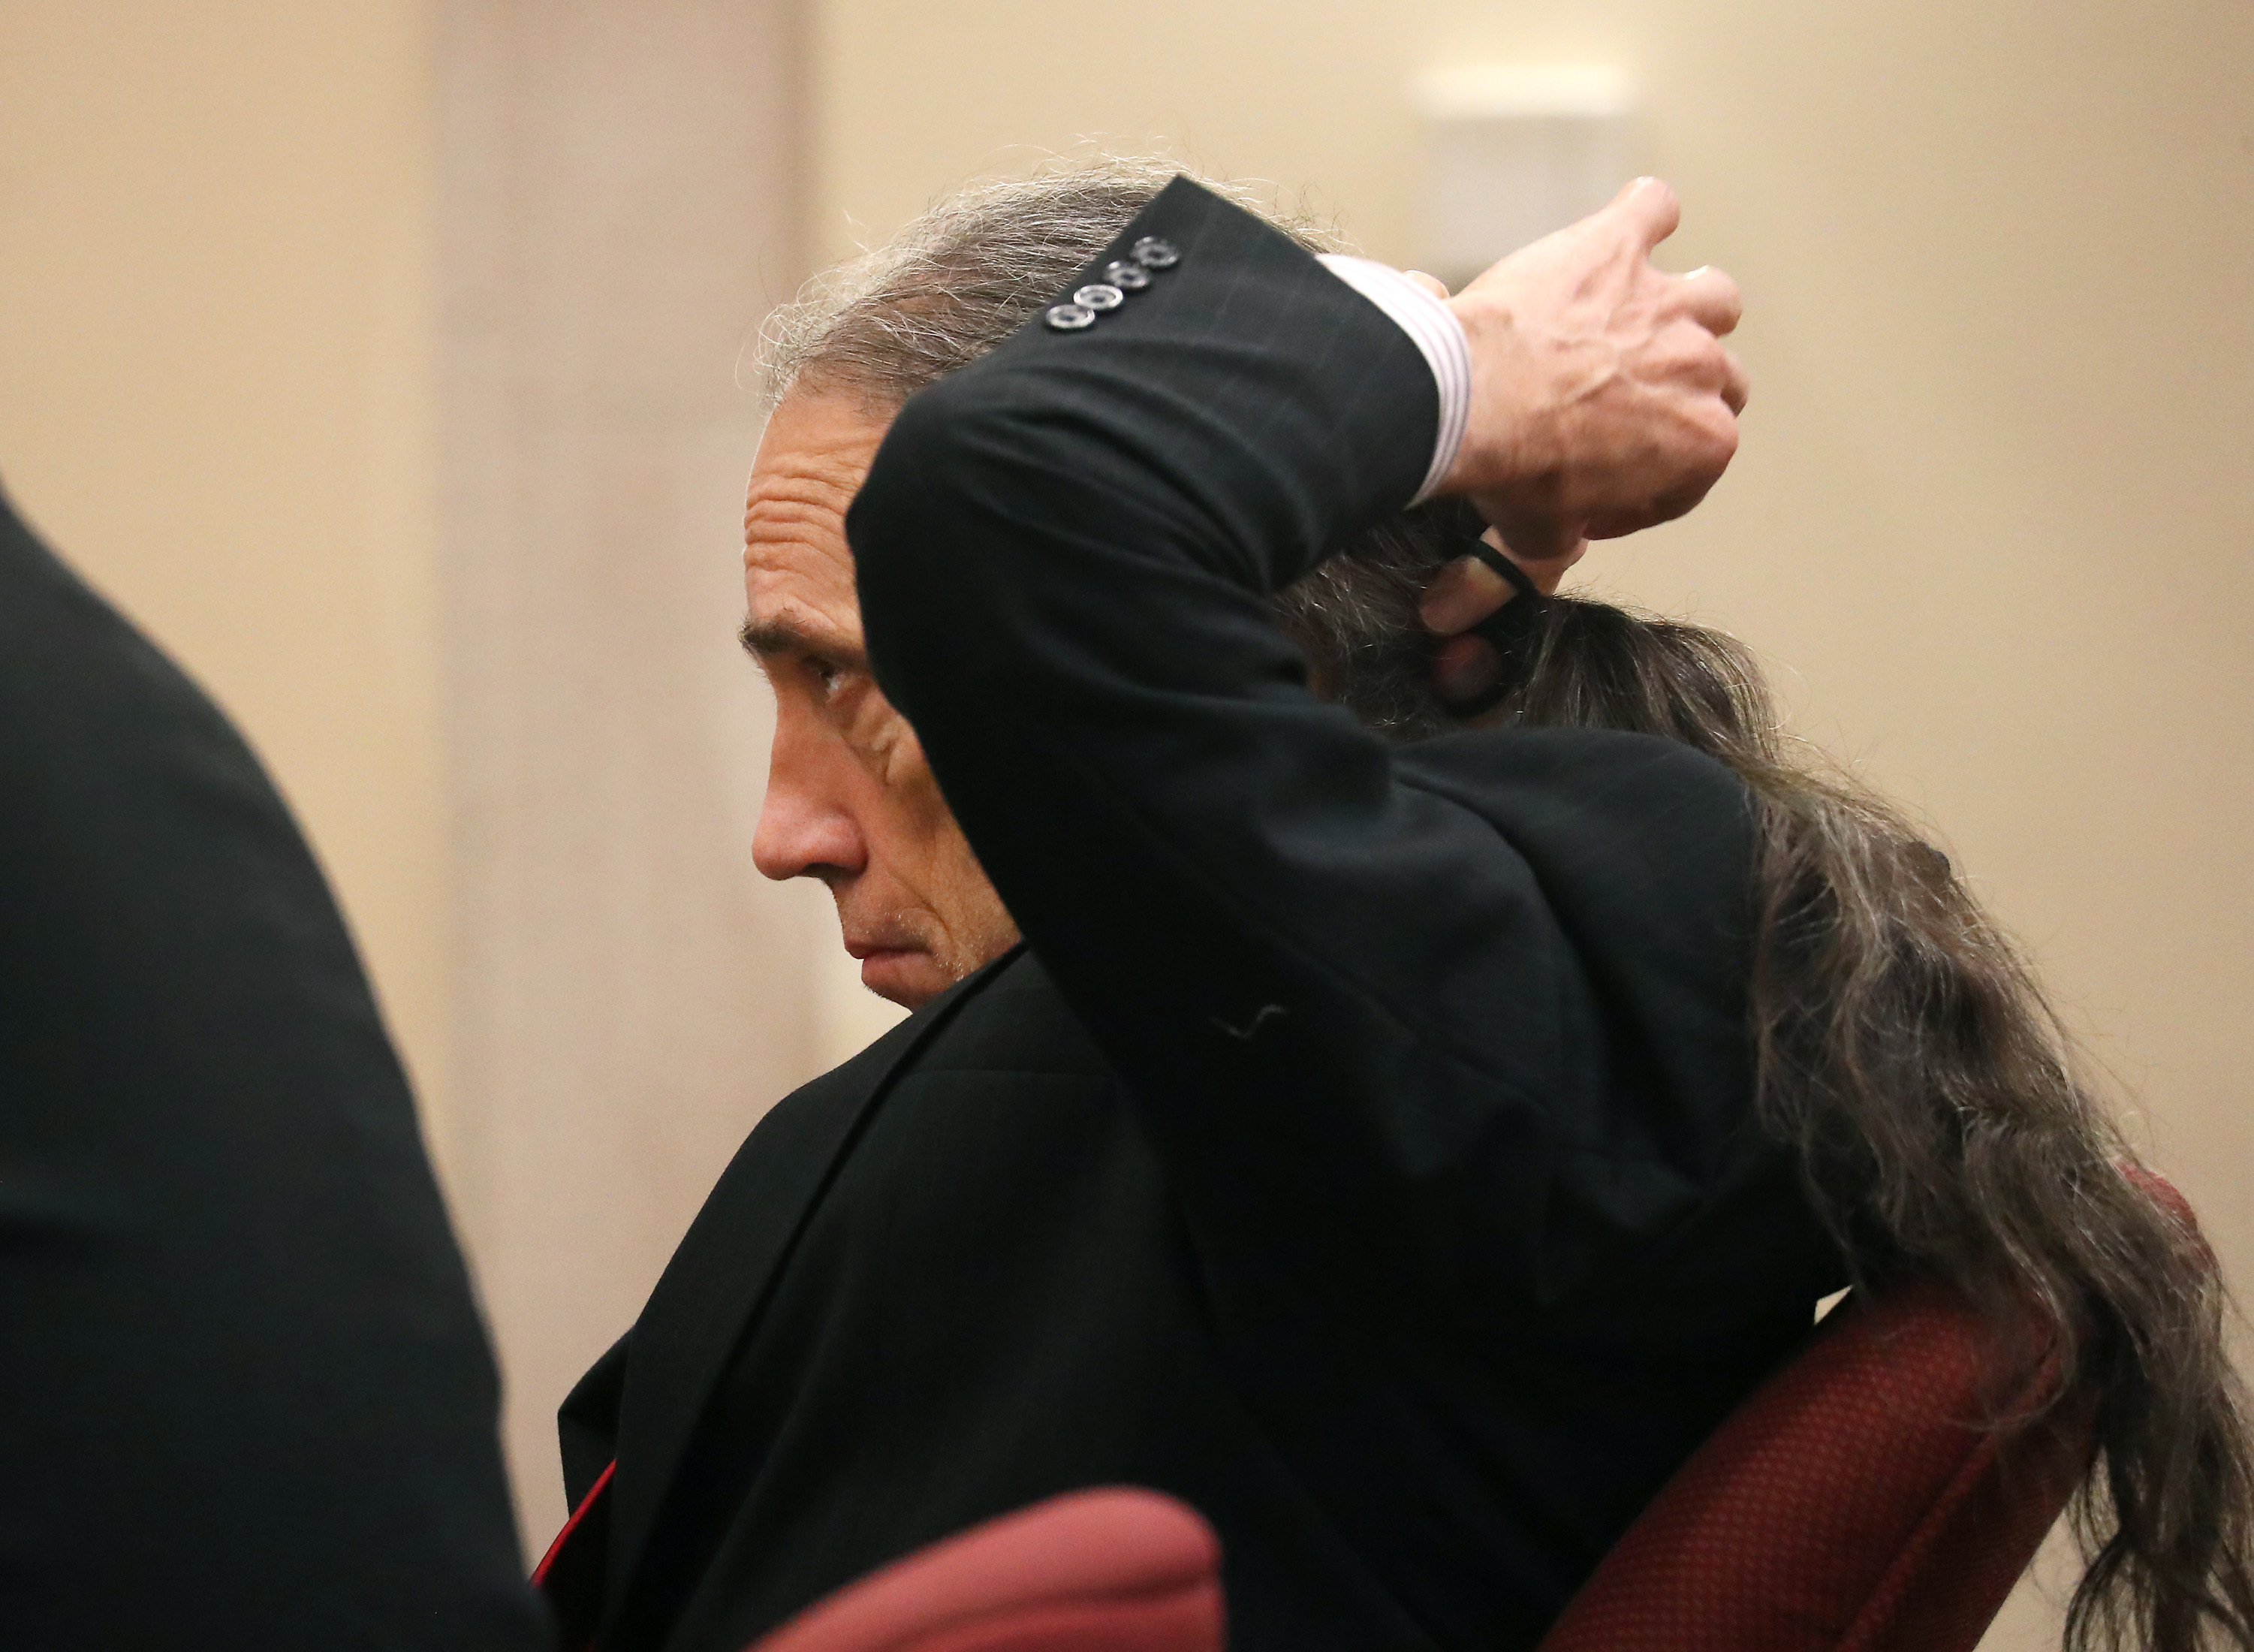 Ferdinand Augello puts his hair in a ponytail as his trial begins at the Atlantic County Justice Facility in Mays Landing, Monday, Sept. 17, 2018. Augello is accused of setting up the killing of April Kauffman to protect an Oxycontin ring Augello and Dr. James Kauffman allegedly set up. (POOL PHOTO | Lori M. Nichols | NJ Advance Media for NJ.com)